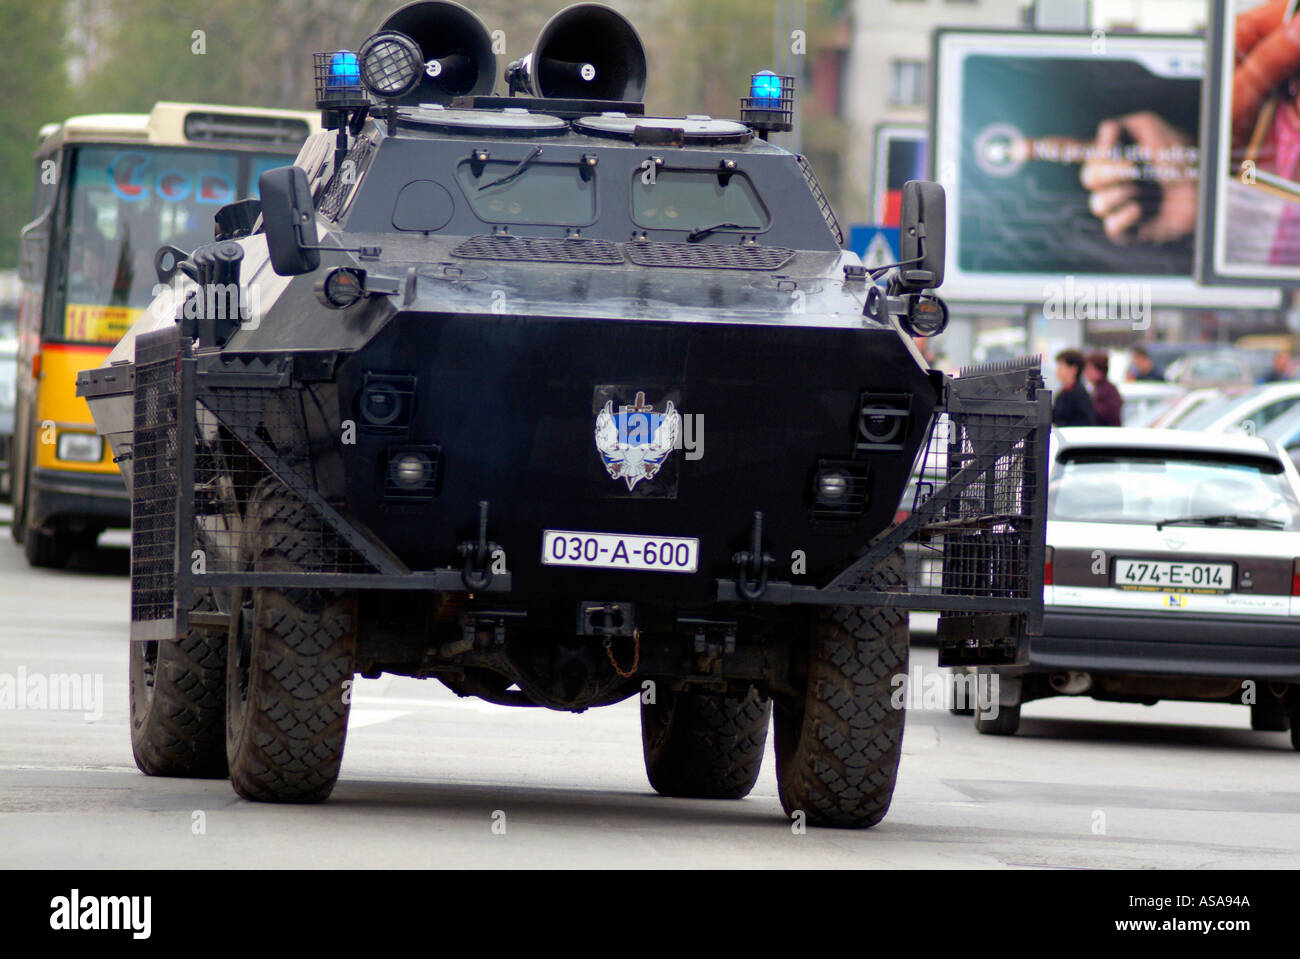 439bfc6284 Bosnian Serb Special Forces Police BRDM Armoured Vehicle on the Streets of  Banja Luka